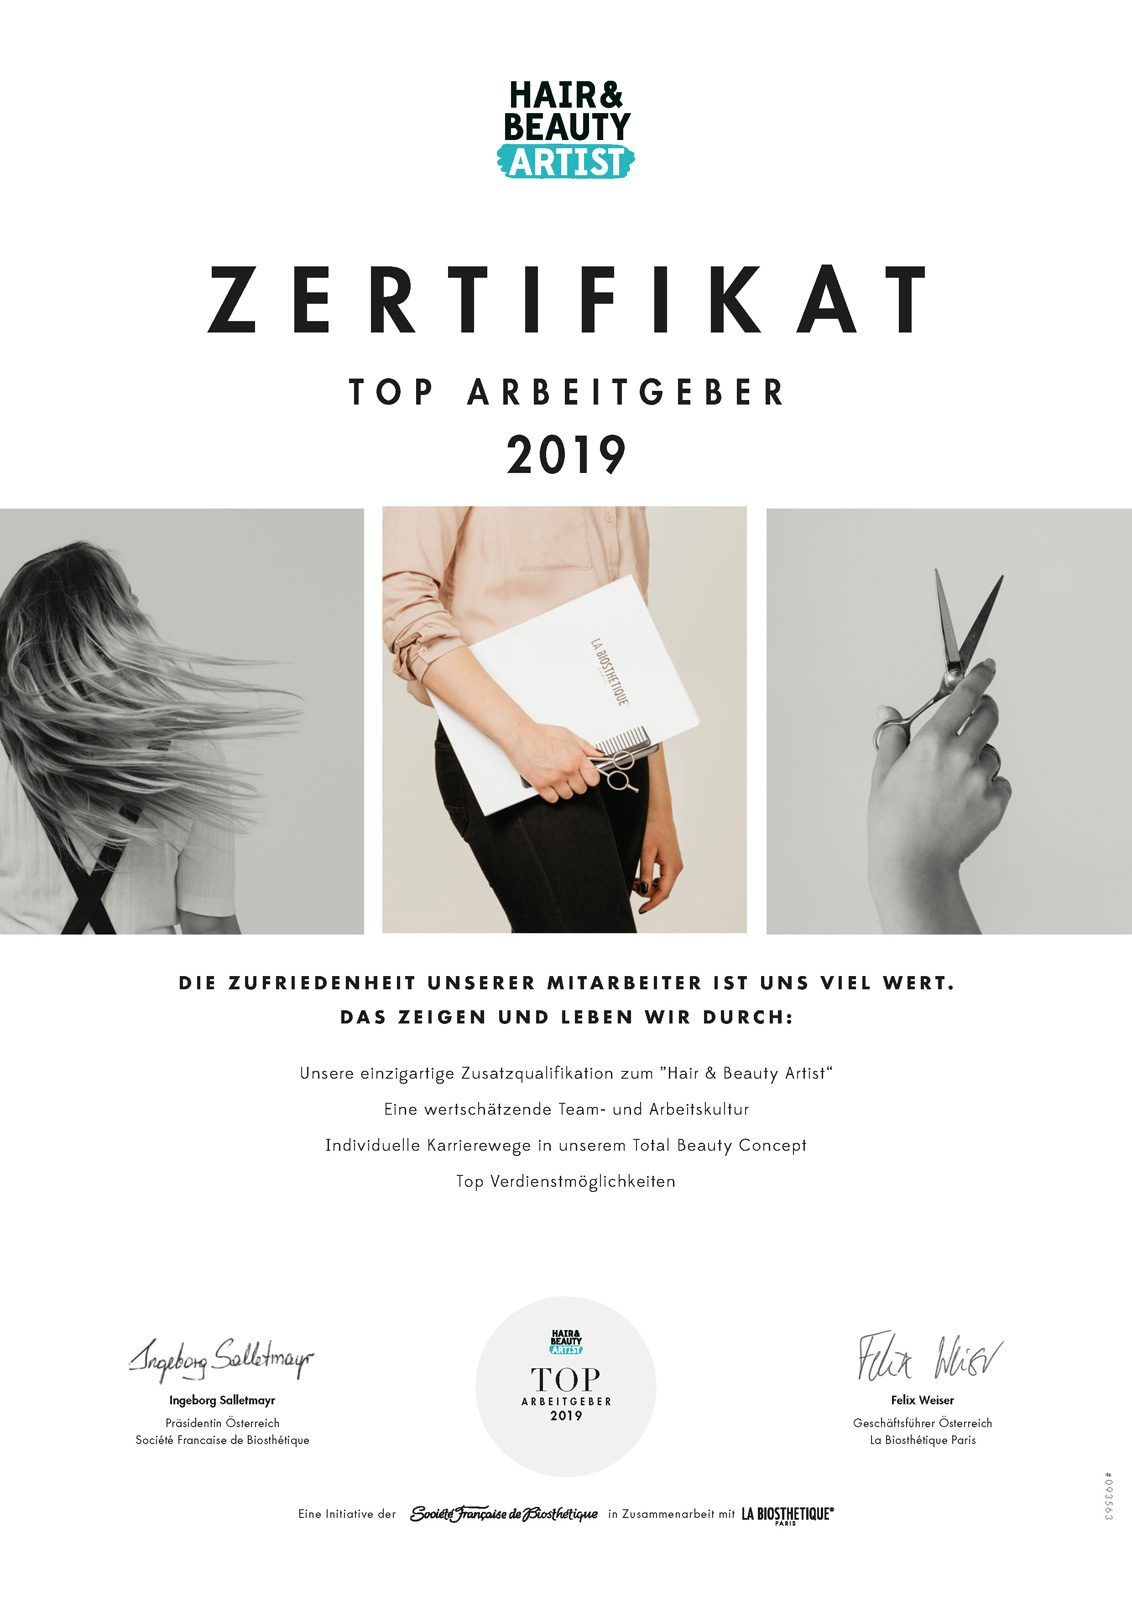 Zertifikat Hair & Beauty Artist 2019 - Salon Birgit Gmeiner